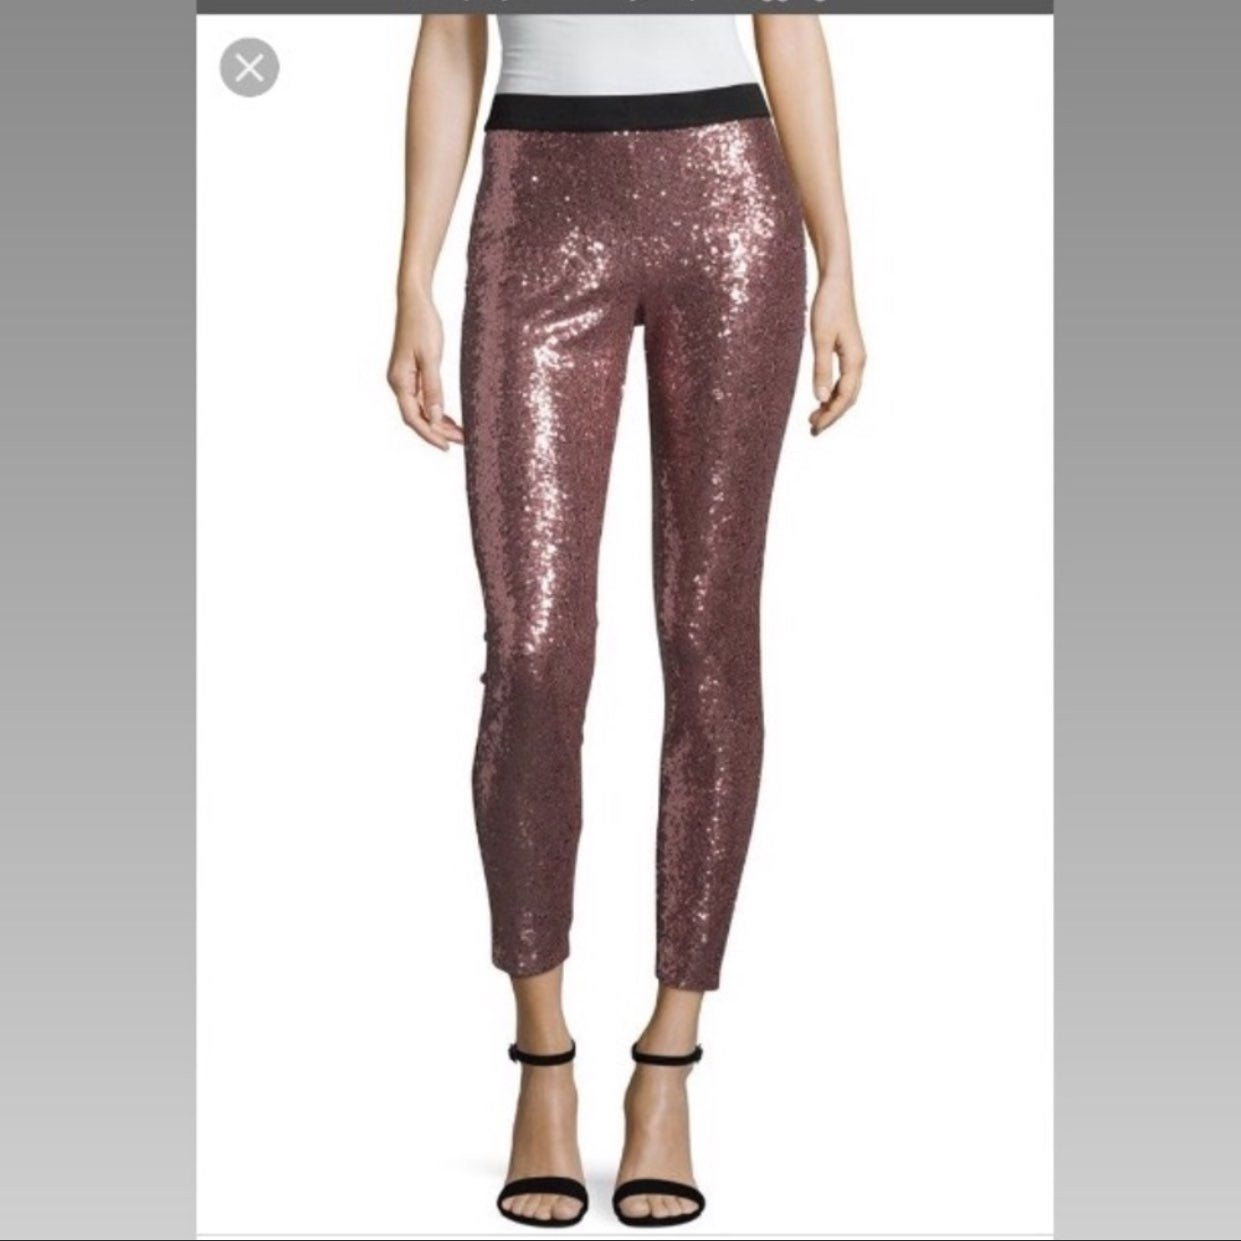 Nwt Project Runway Pink Sequin Pants